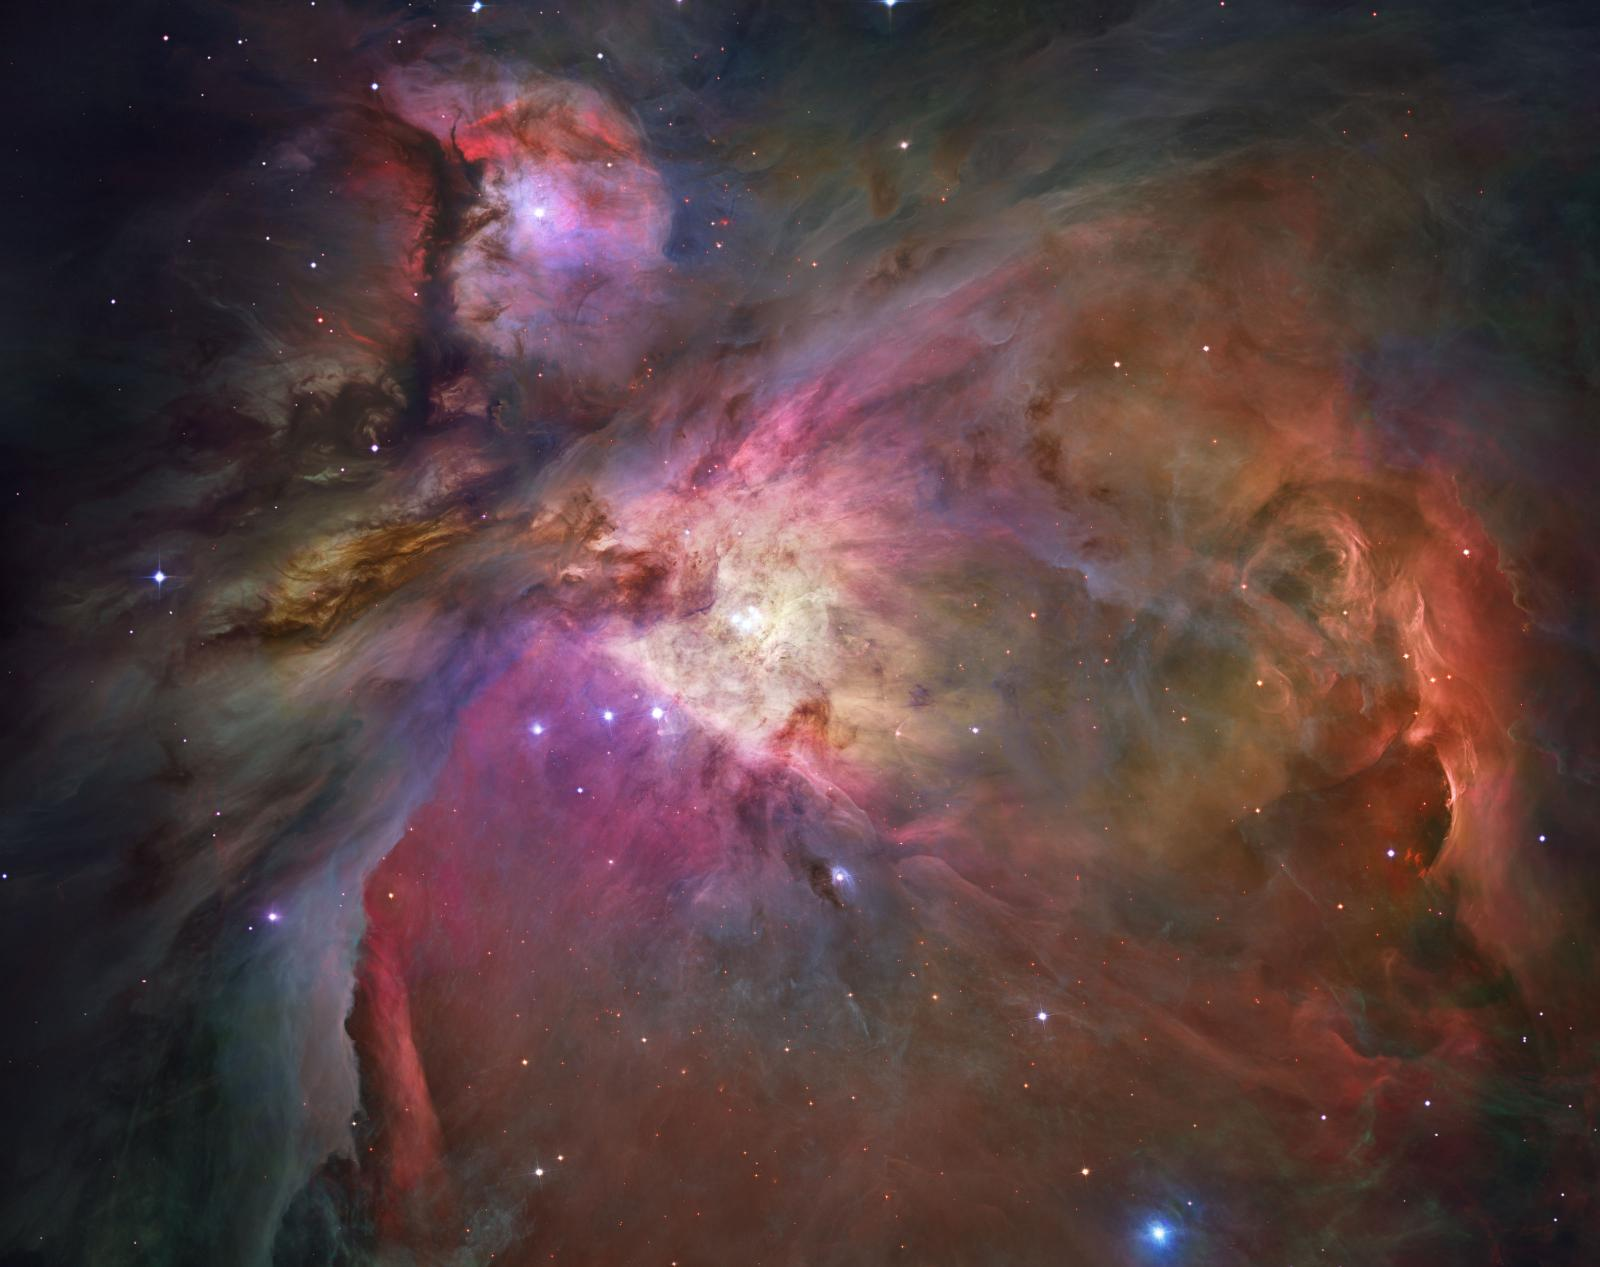 Hubble Space Telescope Image of the Orion Nebula